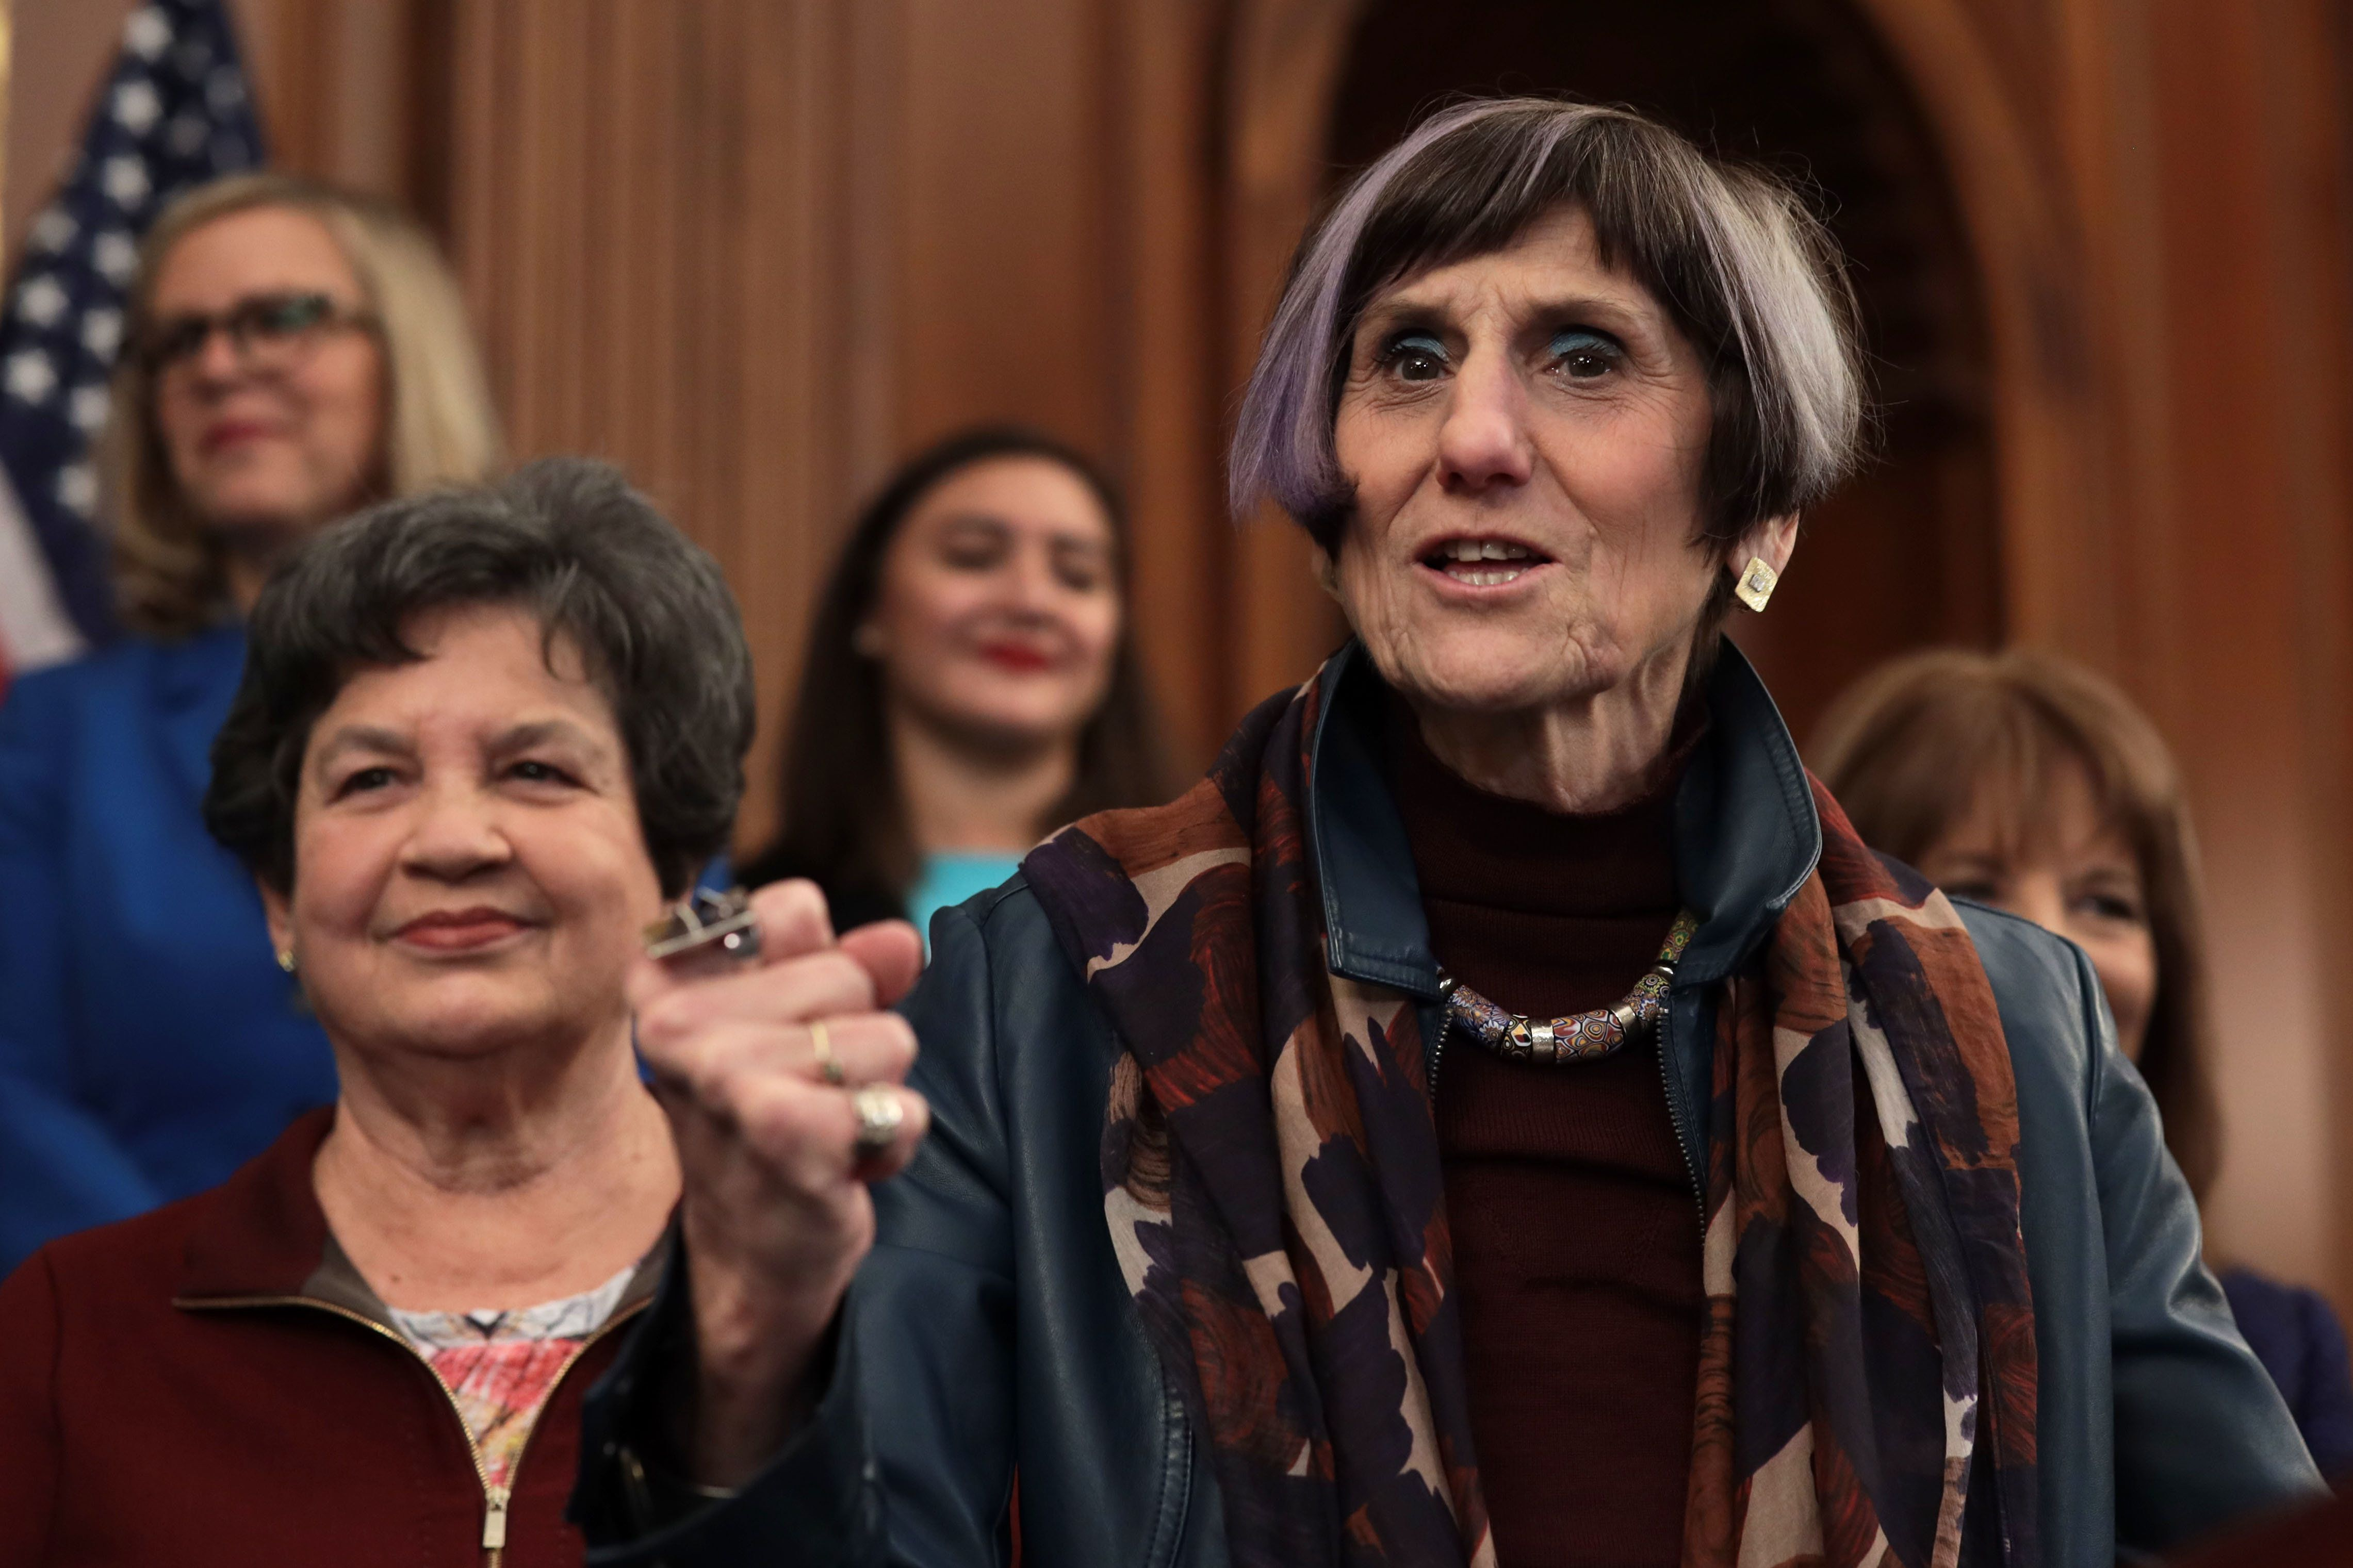 WASHINGTON, DC - JANUARY 30:   U.S. Rep. Rosa DeLauro (D-CT) (R) speaks as Rep. Lois Frankel (D-NY) (L) listens during a news conference at the U.S. Capitol January 30, 2019 in Washington, DC. House Democrats held a news conference to introduce the 'Paycheck Fairness Act.'  (Photo by Alex Wong/Getty Images)